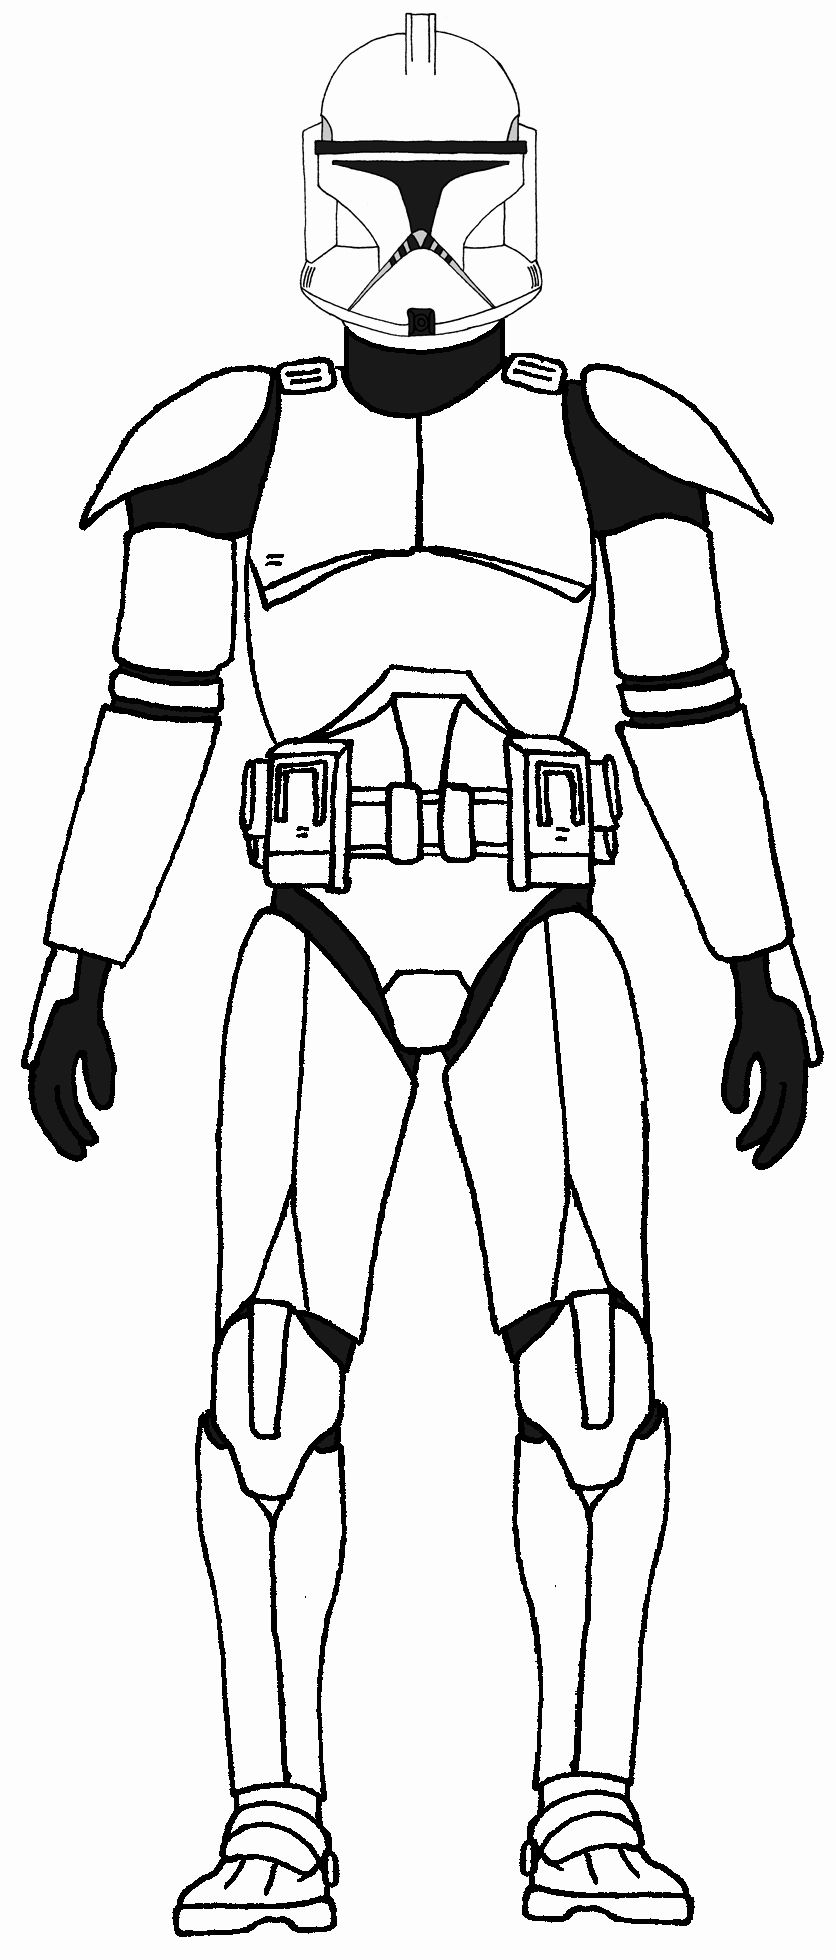 Clone Trooper Coloring Page Beautiful M Phase 2 Clone Trooper Coloring Pages Coloring Pages Star Wars Clone Wars Star Wars Drawings Star Wars Trooper